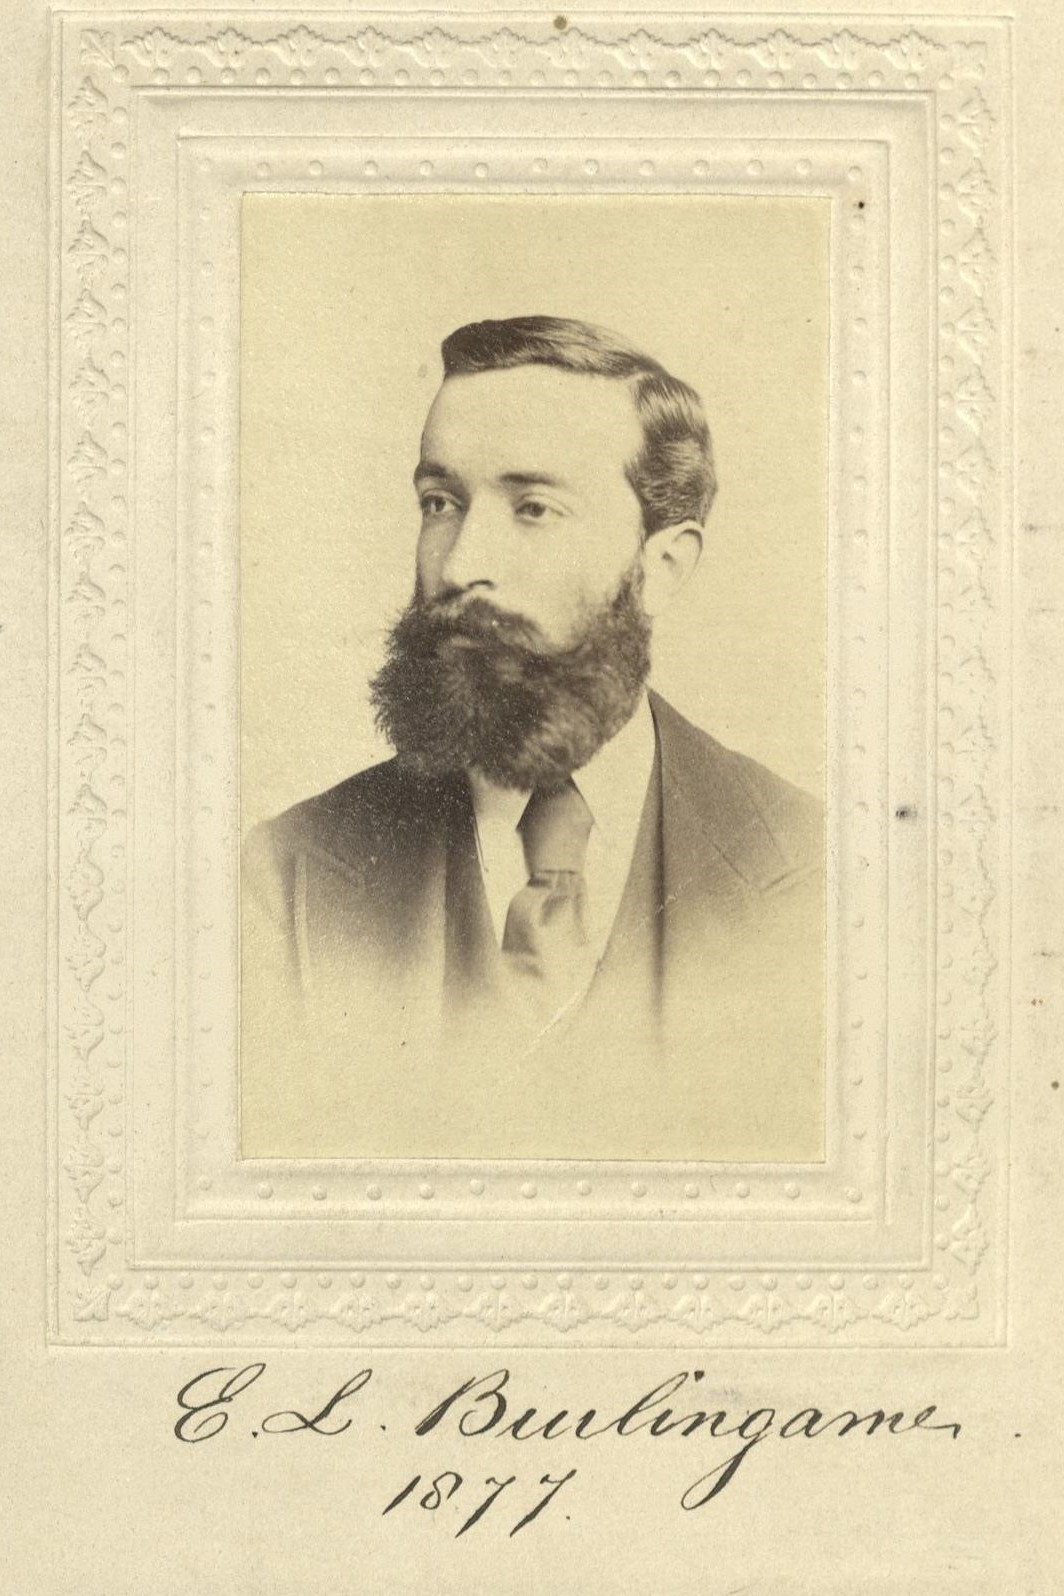 Member portrait of Edward L. Burlingame